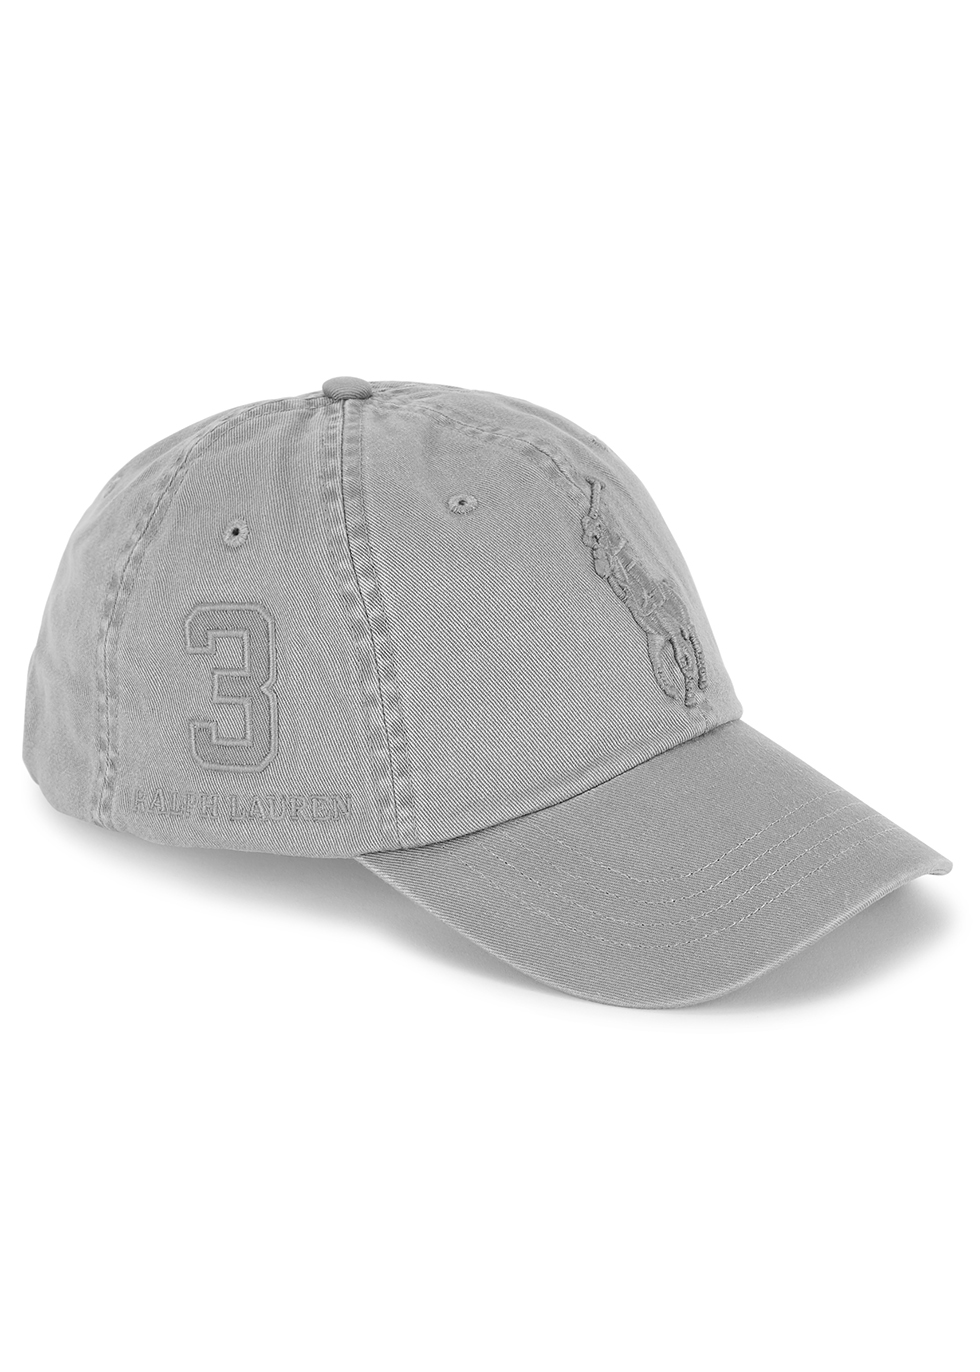 Grey embroidered cotton cap